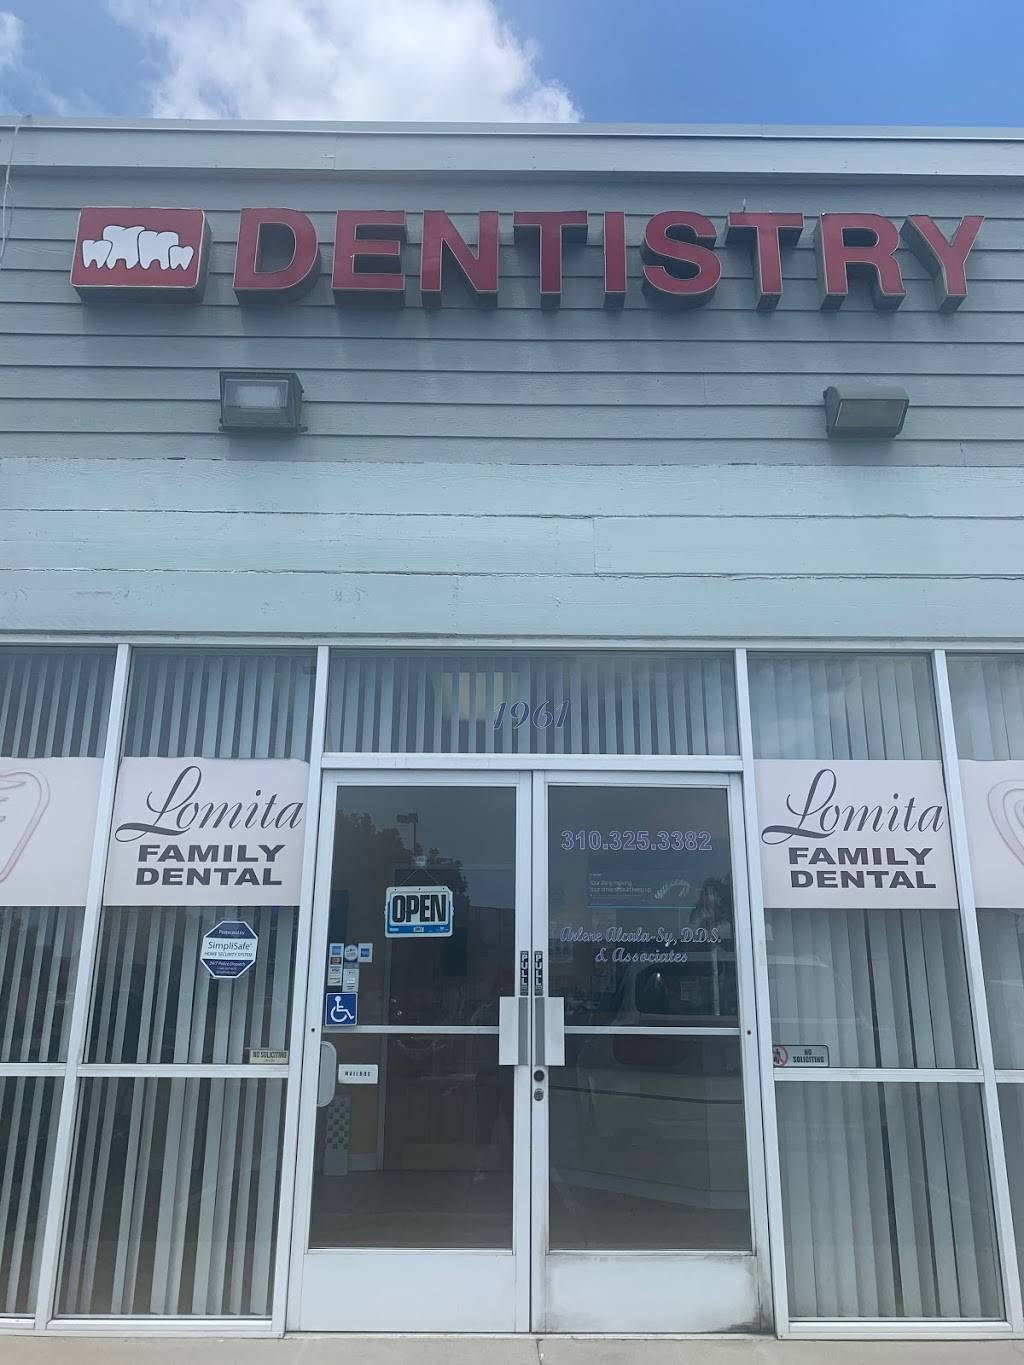 Lomita Family Dental - dentist  | Photo 4 of 5 | Address: 2647, 1961 Pacific Coast Hwy, Lomita, CA 90717, USA | Phone: (310) 325-3382